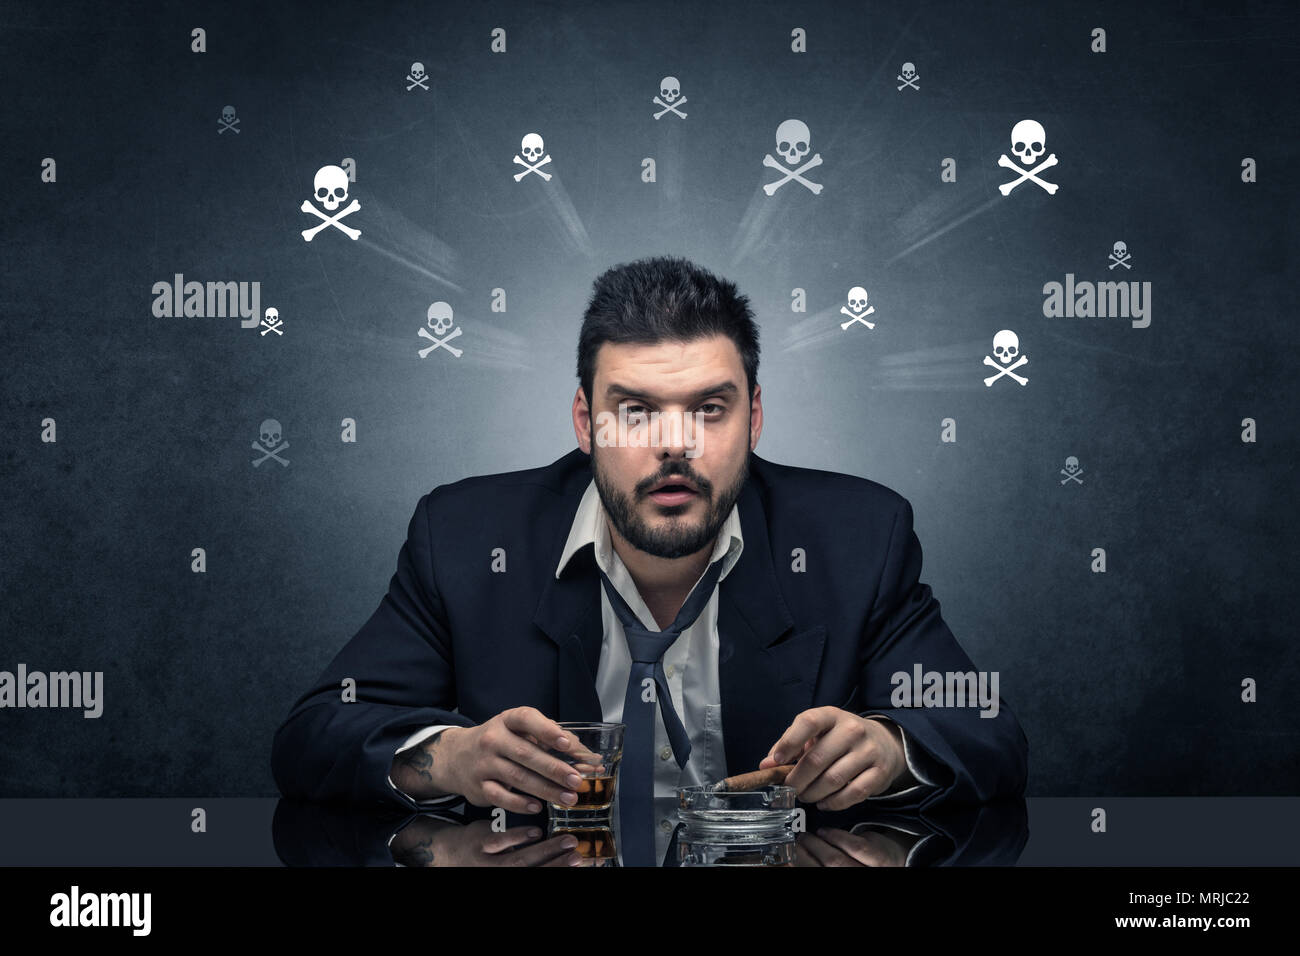 Loser drunk man sitting at table with skulls concept around  - Stock Image